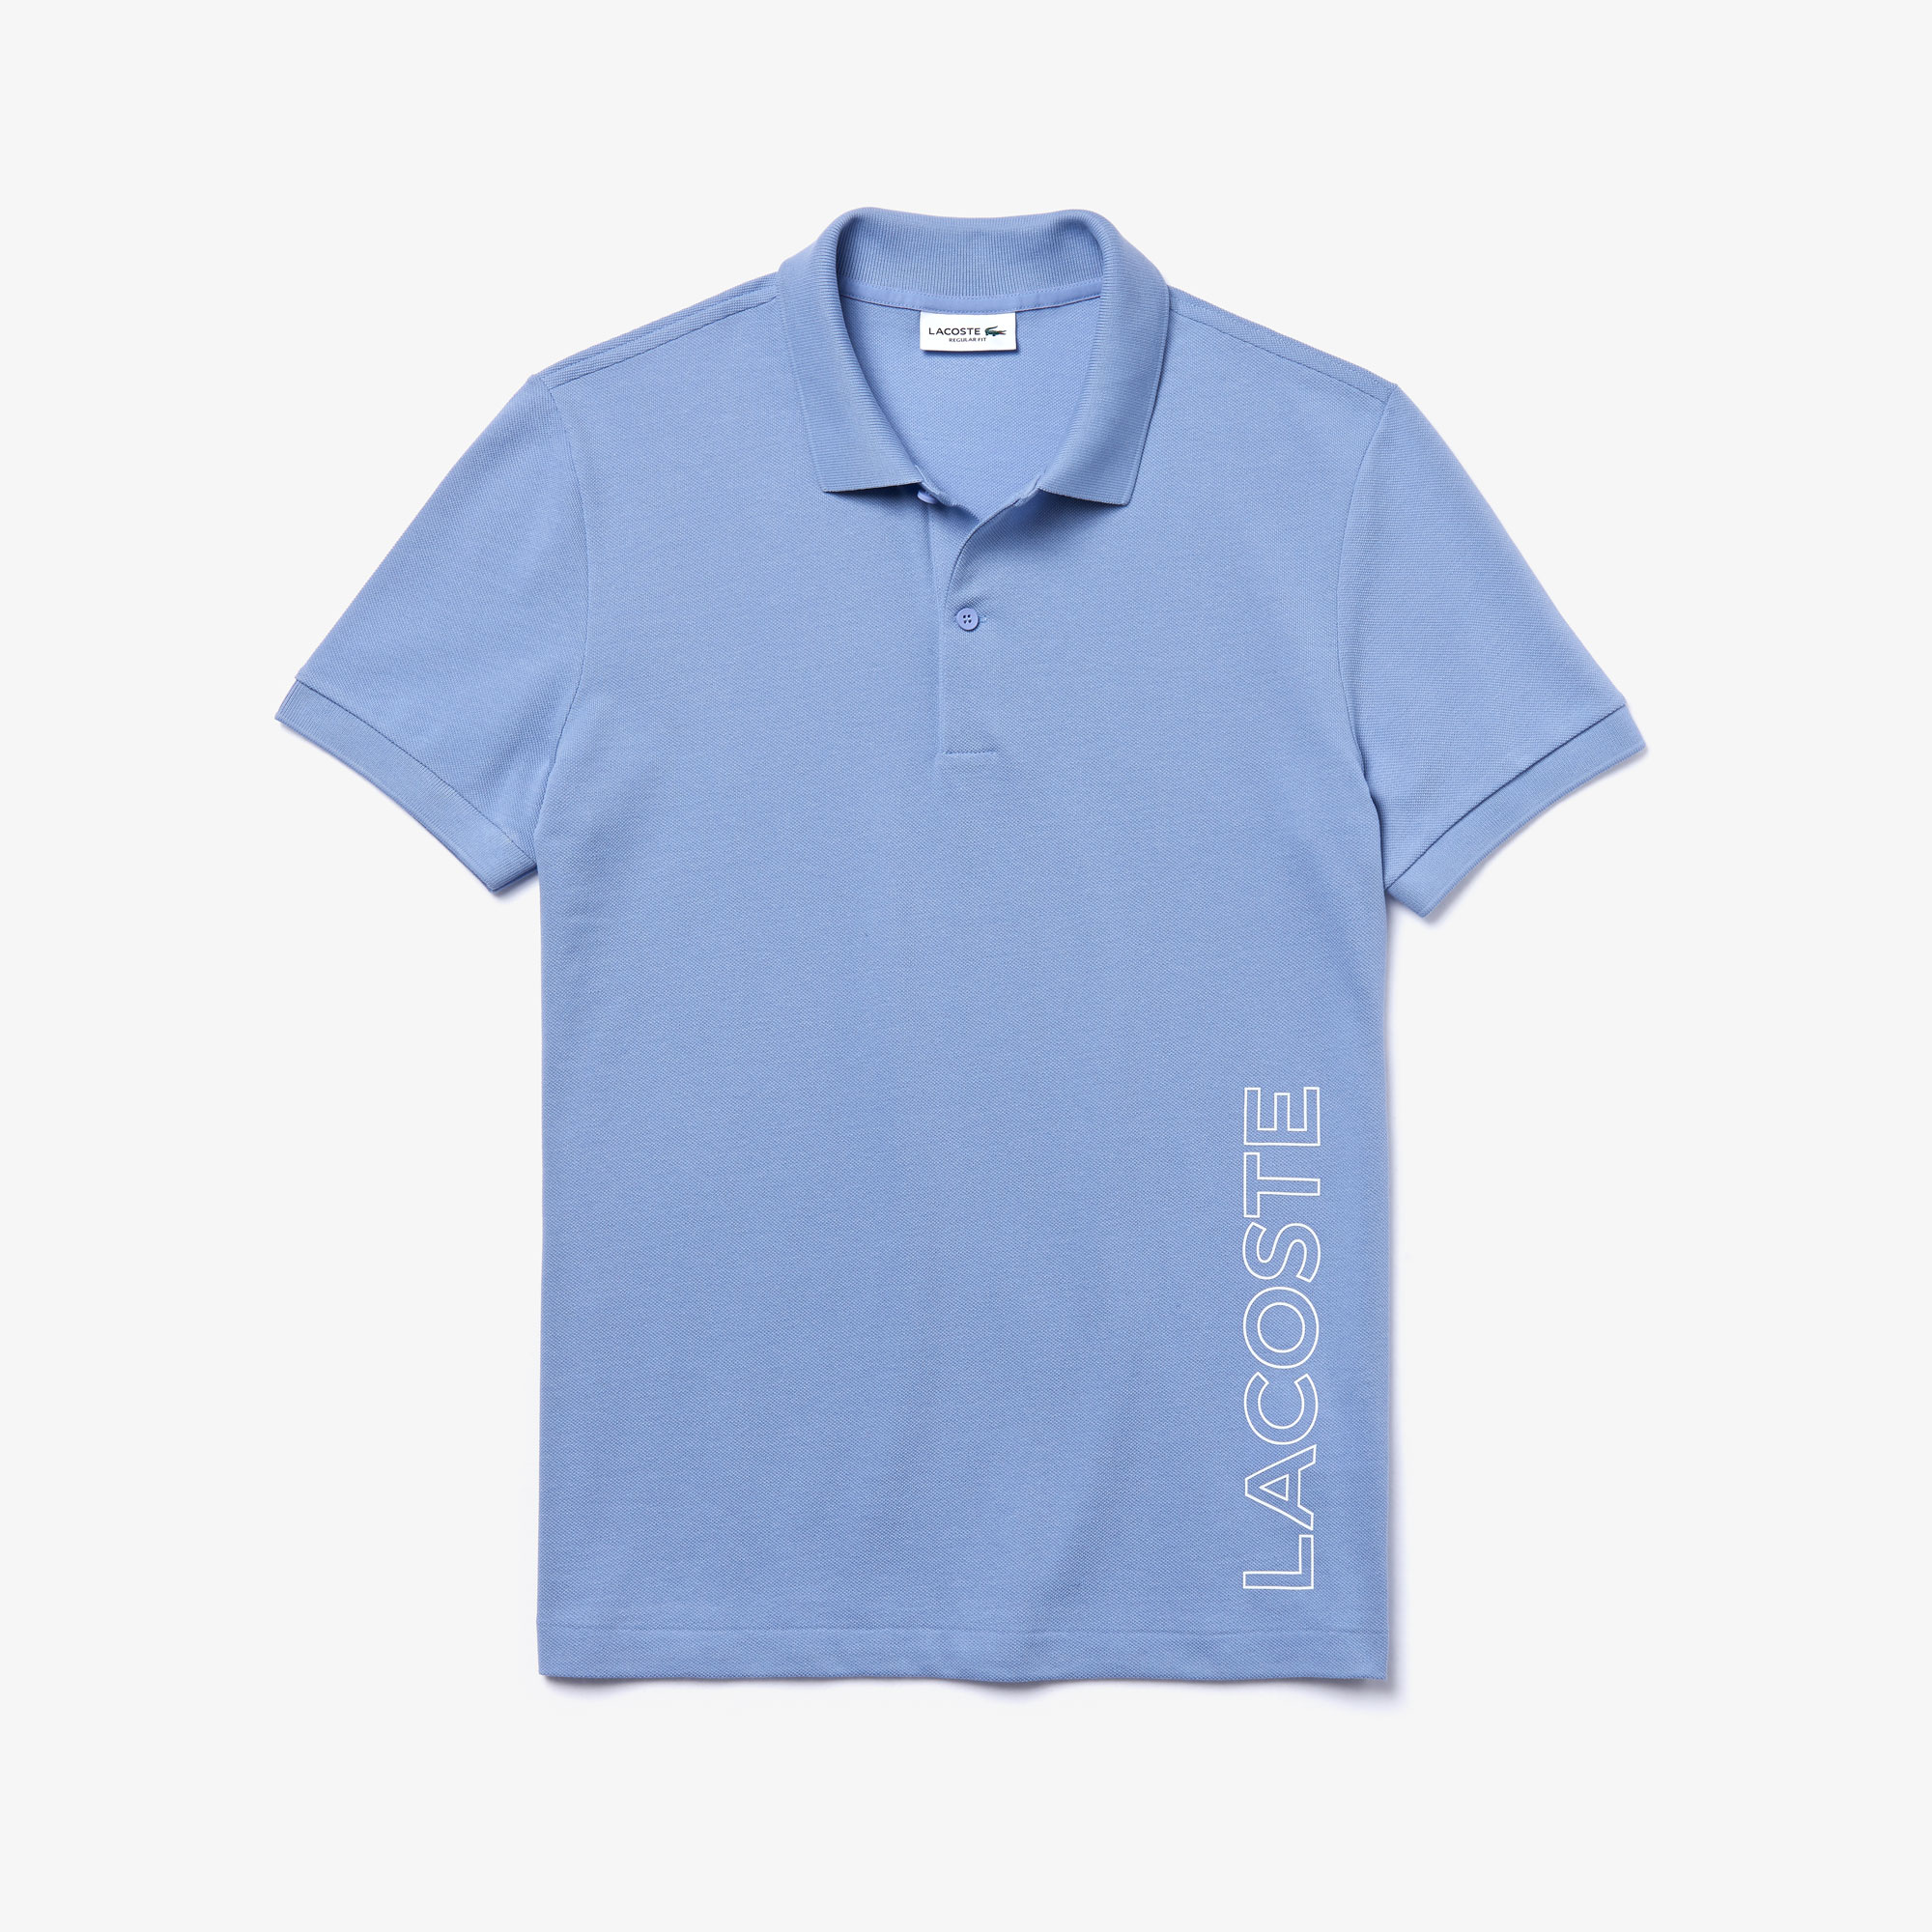 Men's Lacoste-Branded Cotton Polo Shirt